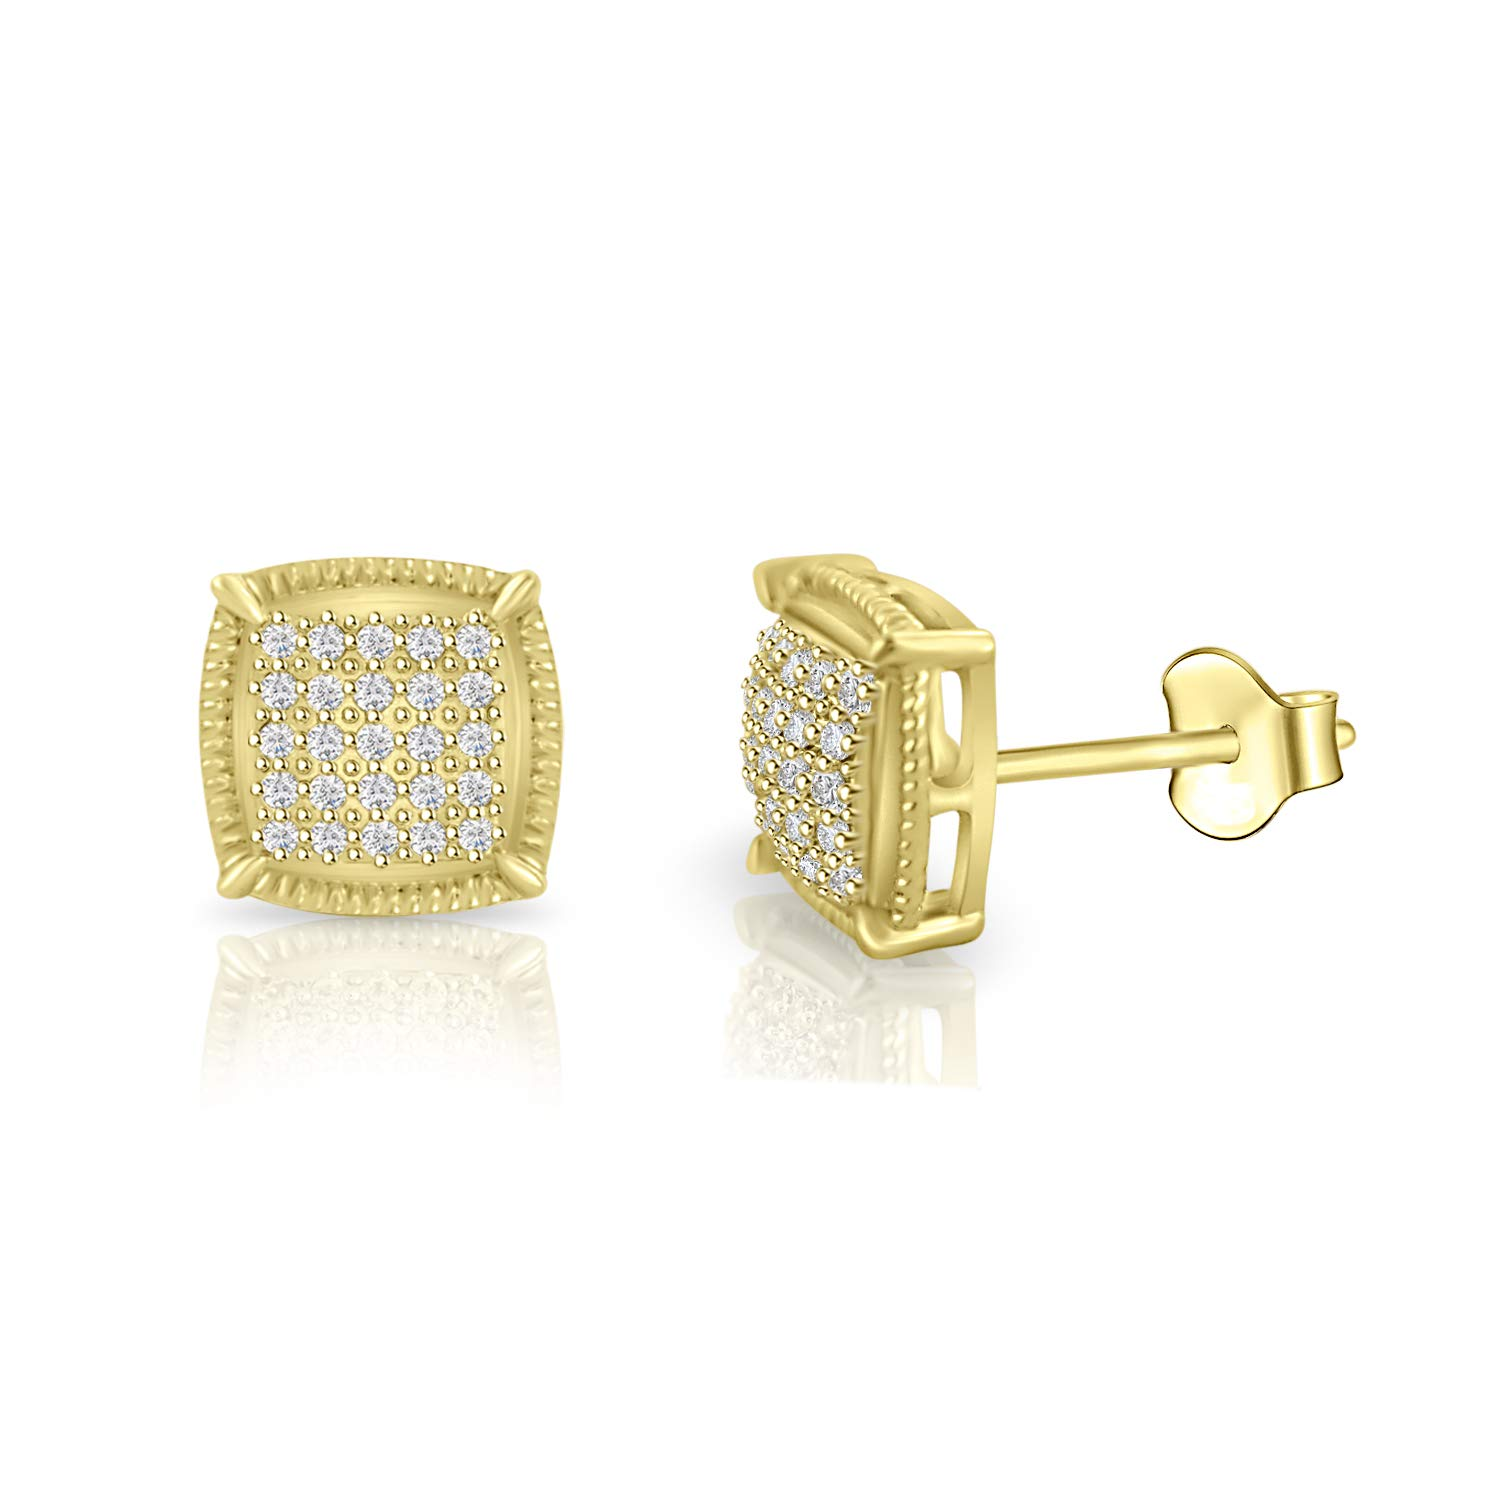 Round Cubic Zirconia Square Cluster Milgrain Stud Earrings in 14k Gold Plated